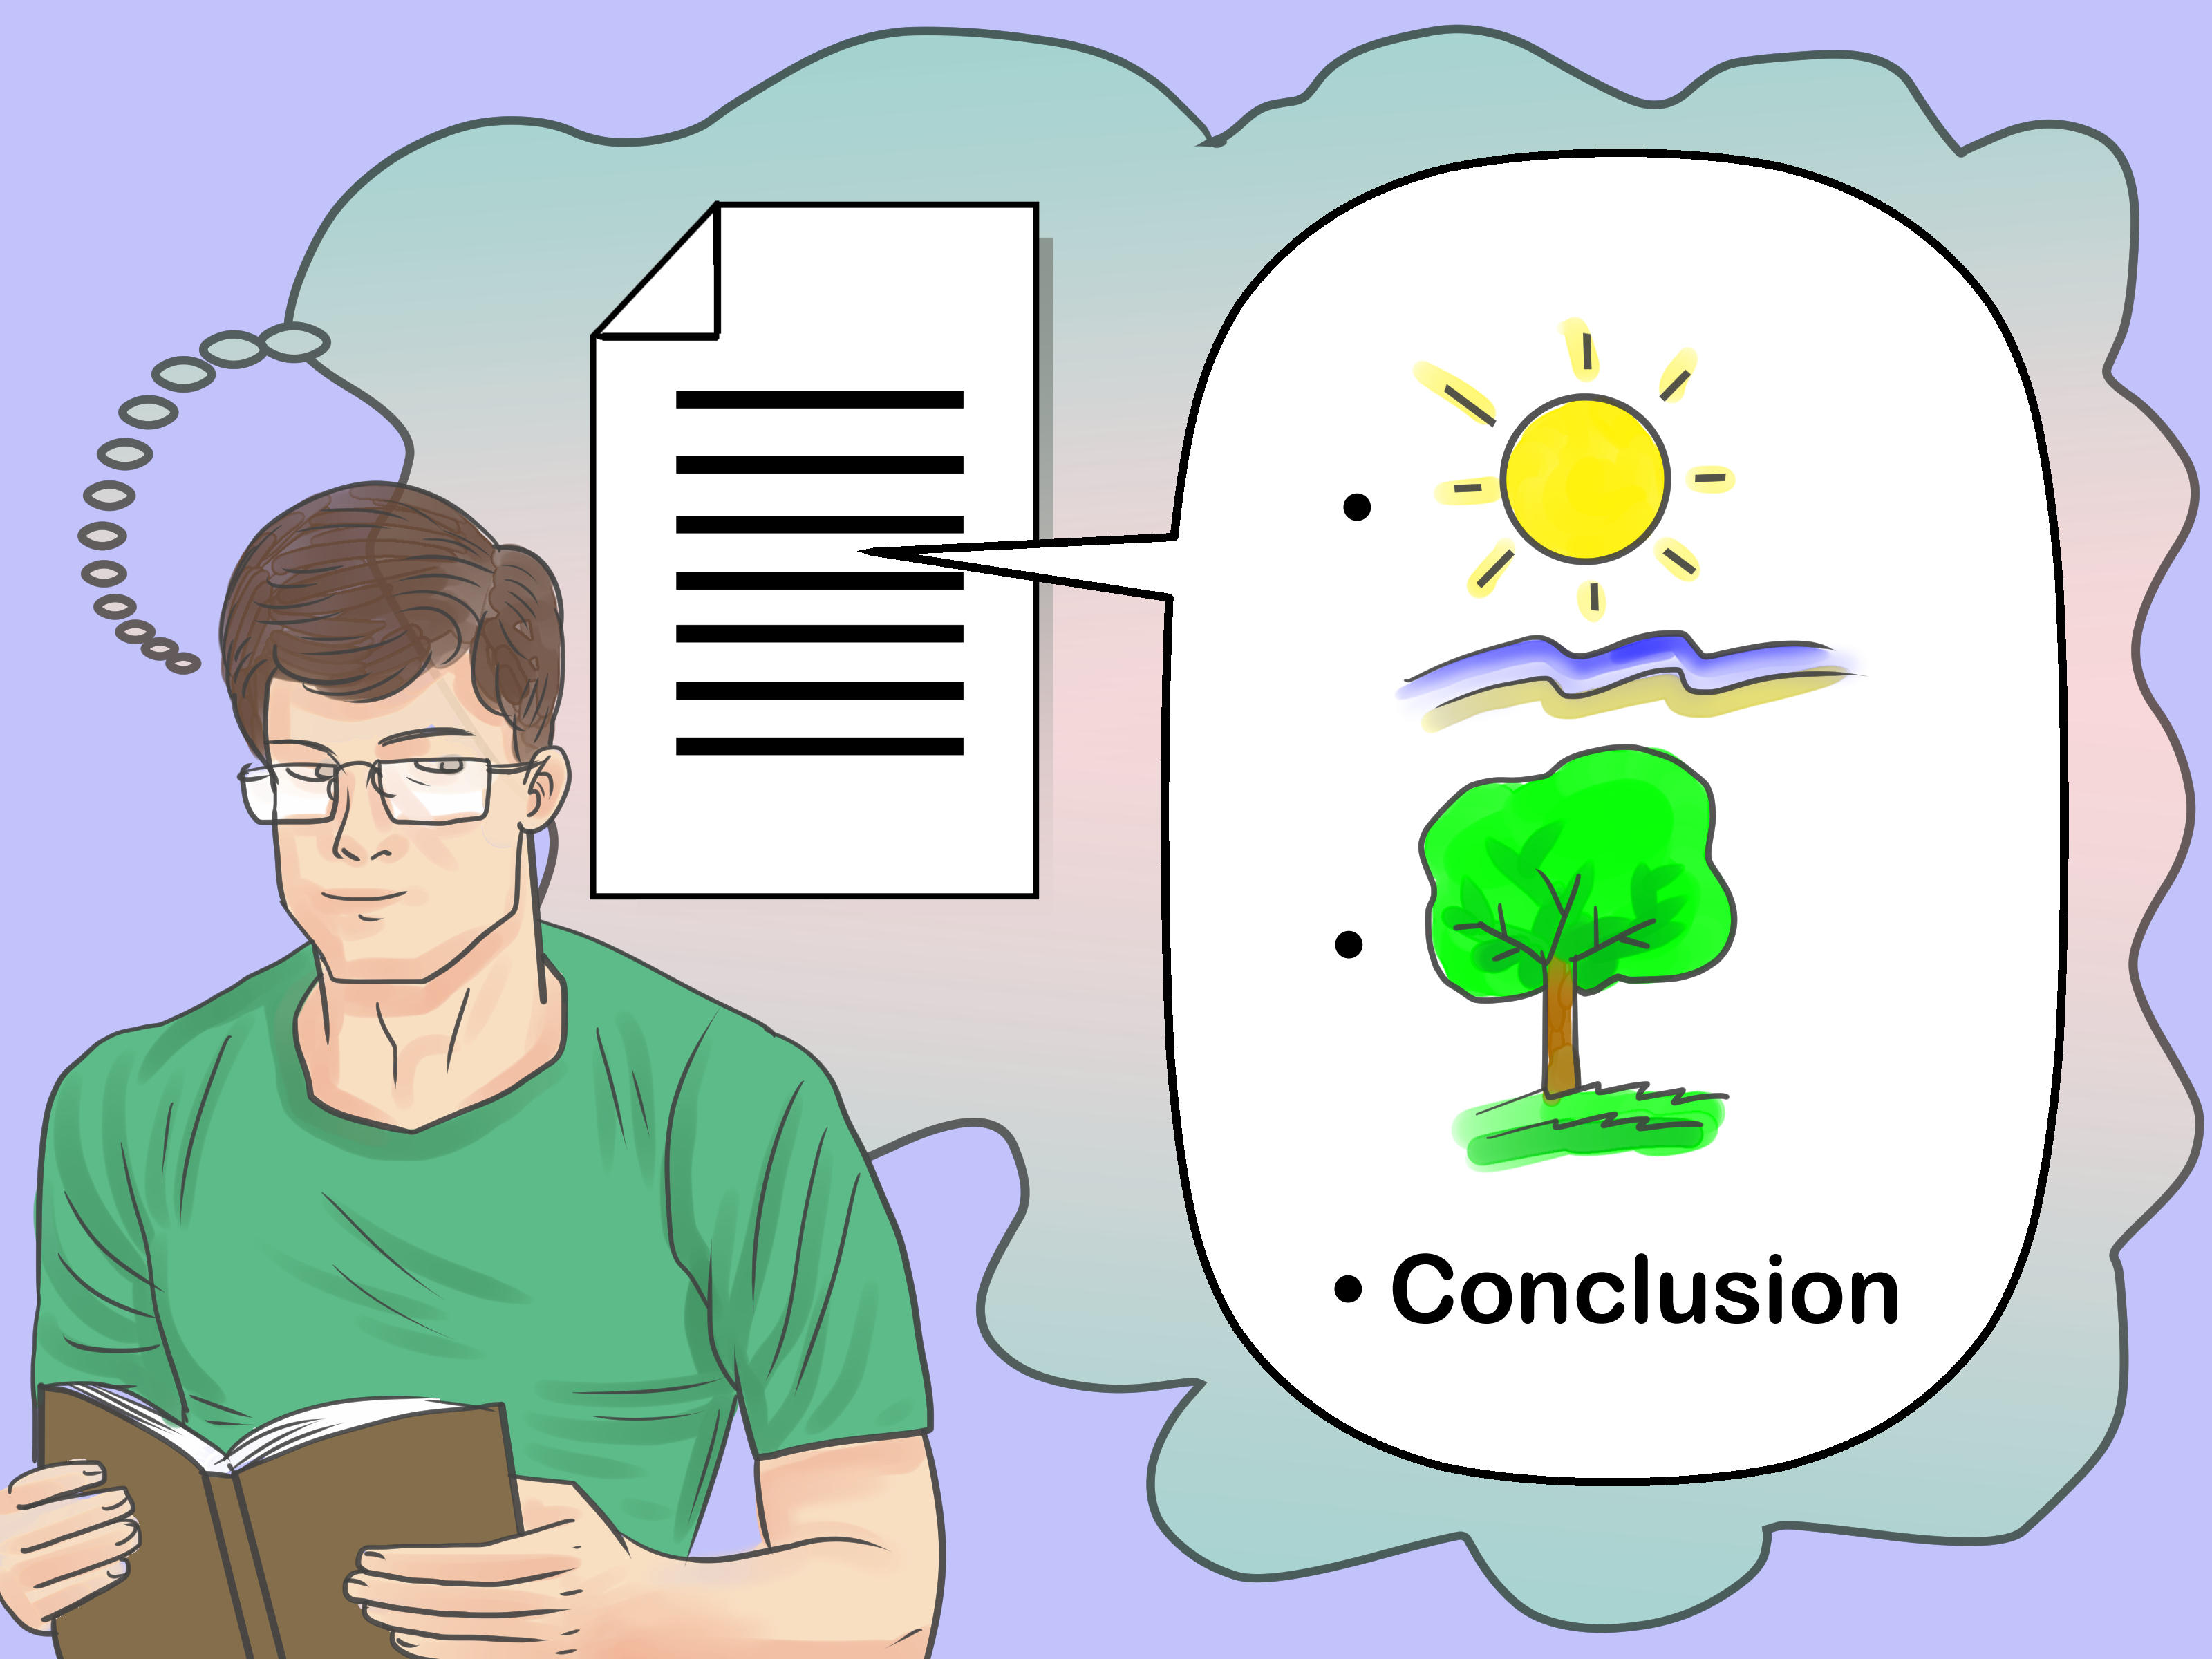 010 Essay Example Write Compare And Contrast Step Version How Striking To Block Method Conclusion Full